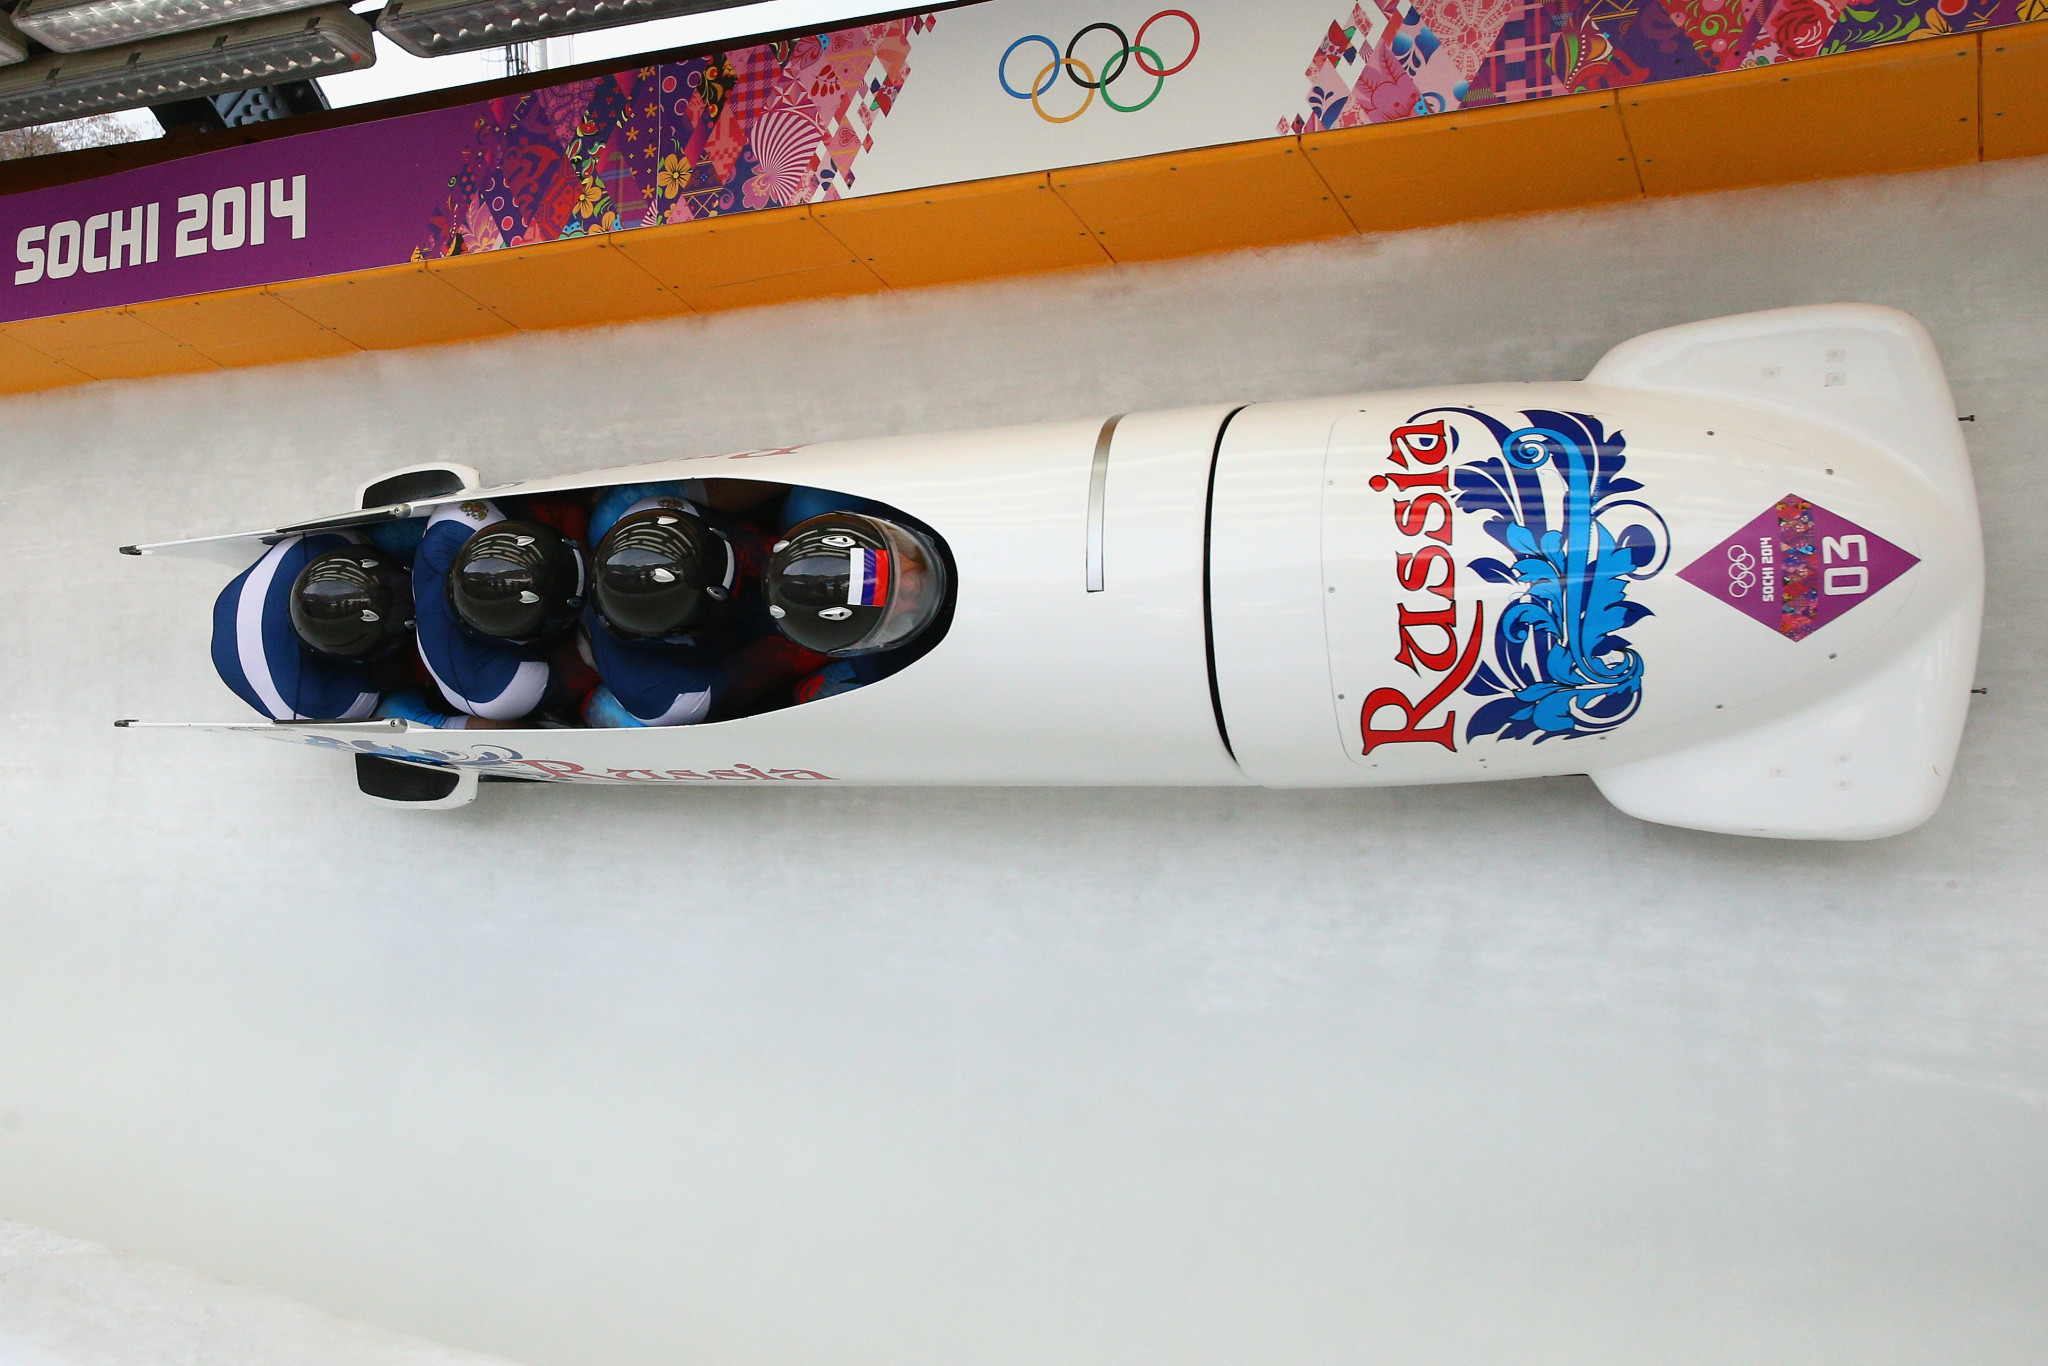 Alexey Voevoda has become the latest member of the Russian bobsleigh quartet to be sanctioned by the IOC ©Getty Images